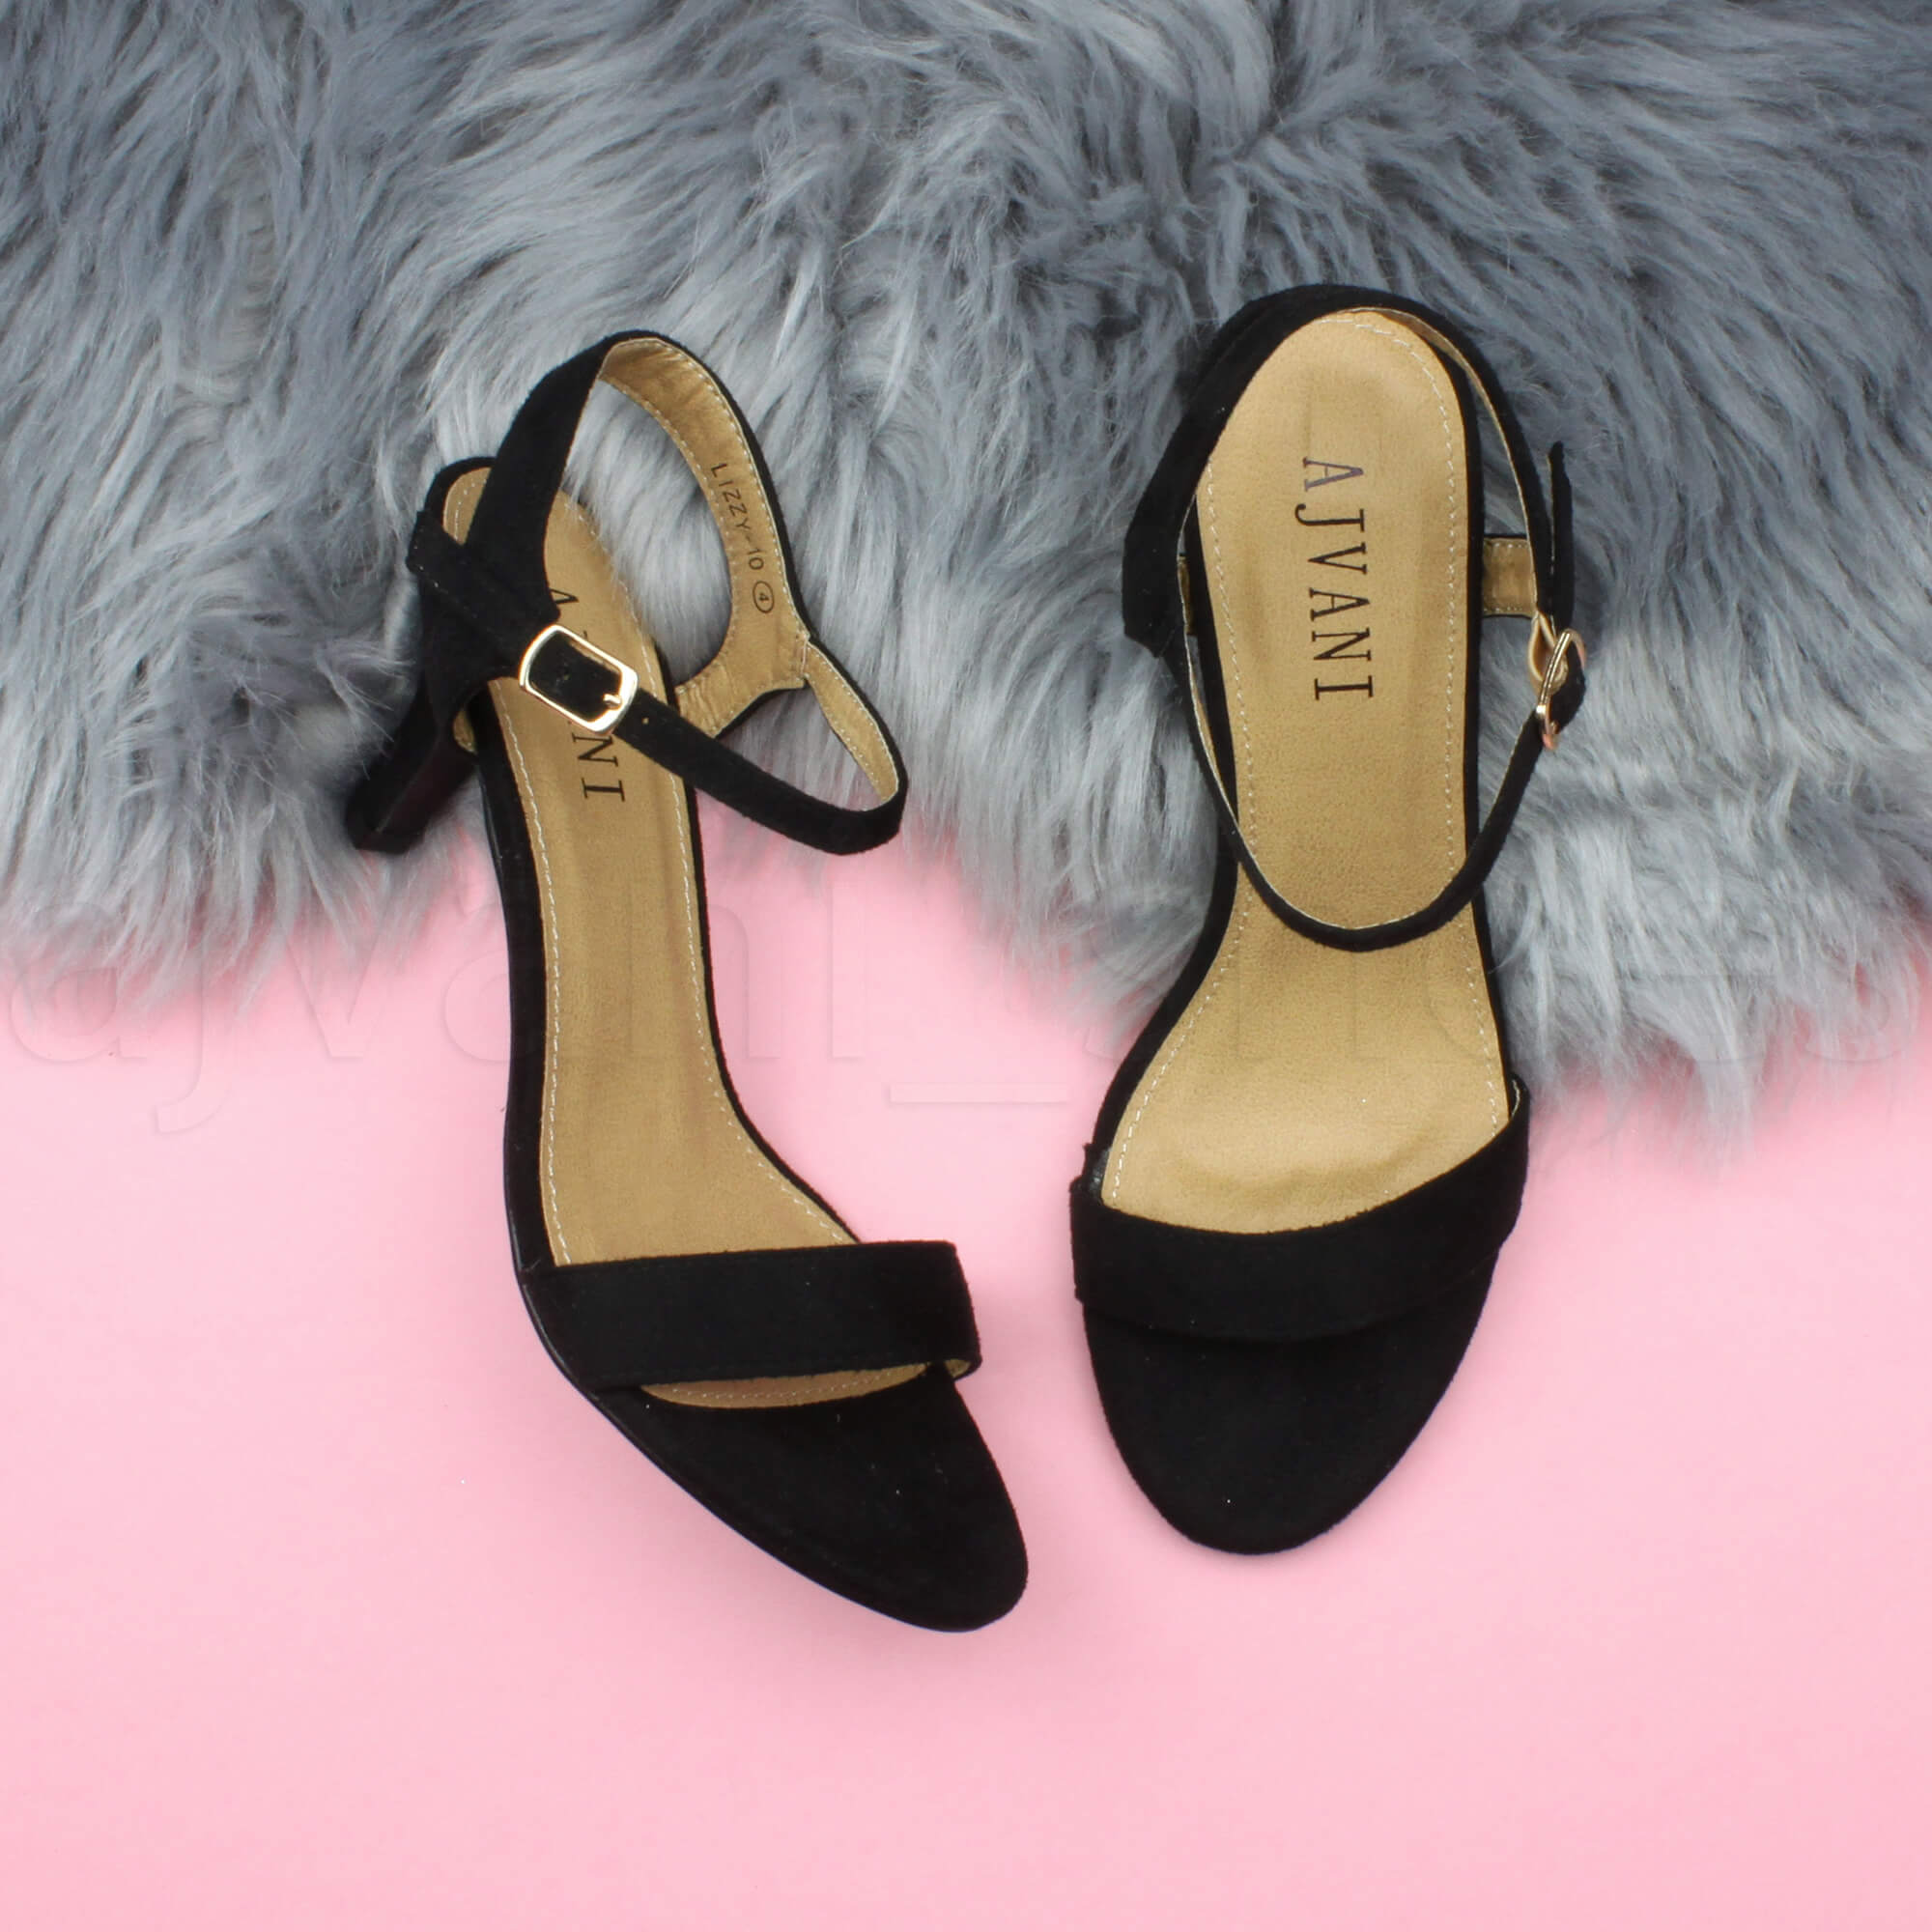 WOMENS-LADIES-HIGH-HEEL-BUCKLE-STRAPPY-BASIC-BARELY-THERE-SANDALS-SHOES-SIZE thumbnail 12